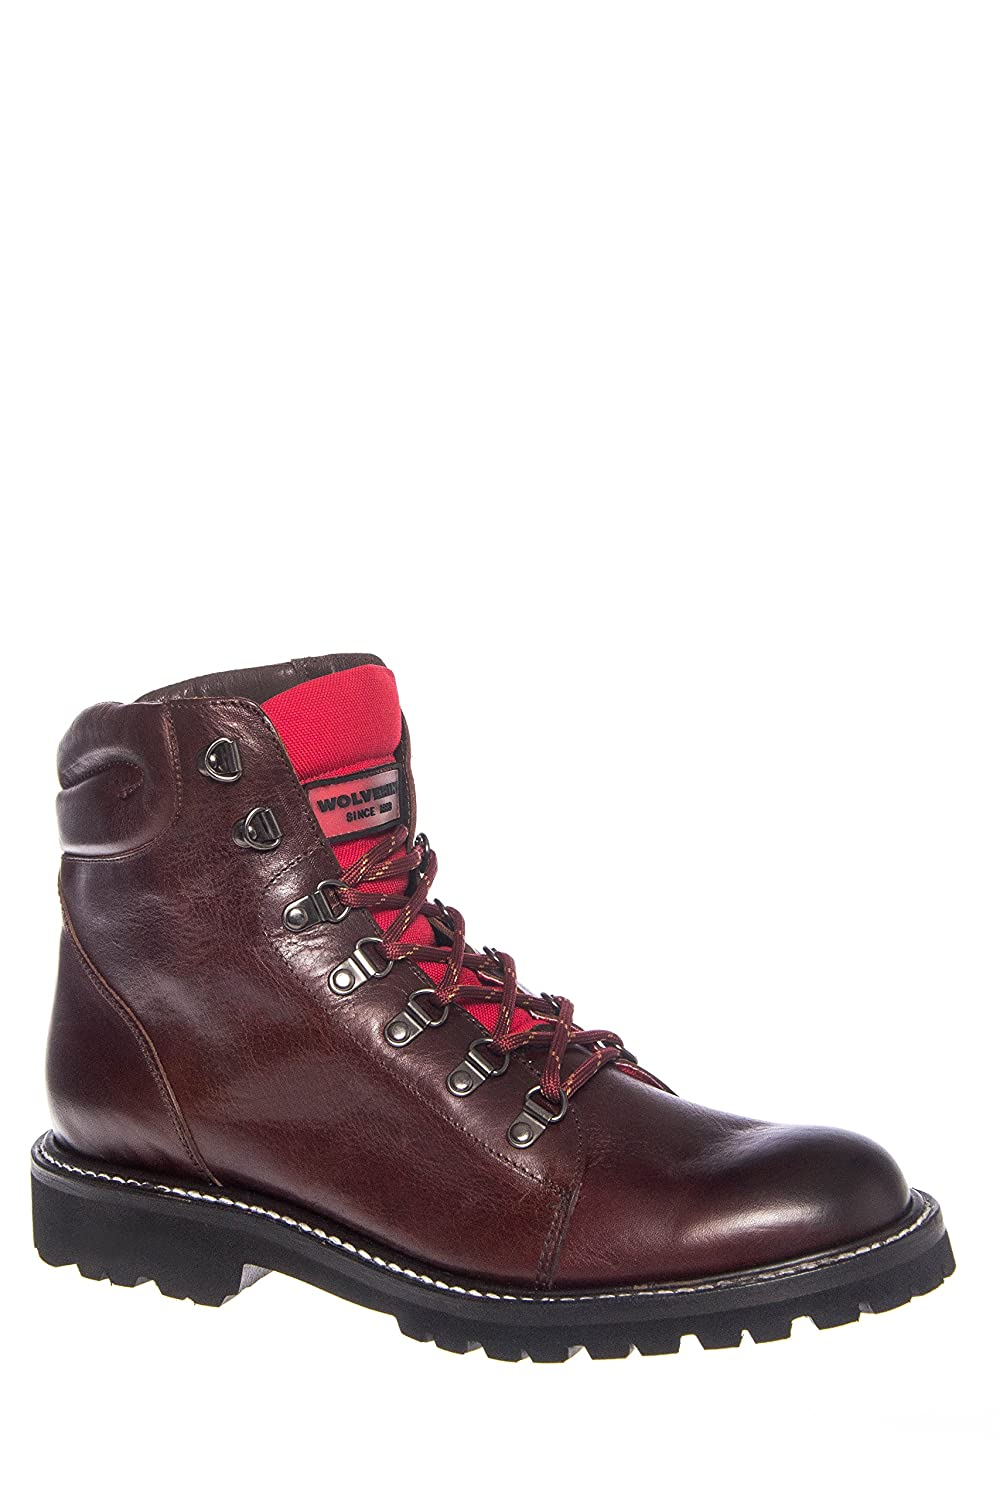 1a21481ac46 Wolverine Men's Leather Copeland Boot [bpz2A14535] - $20.00